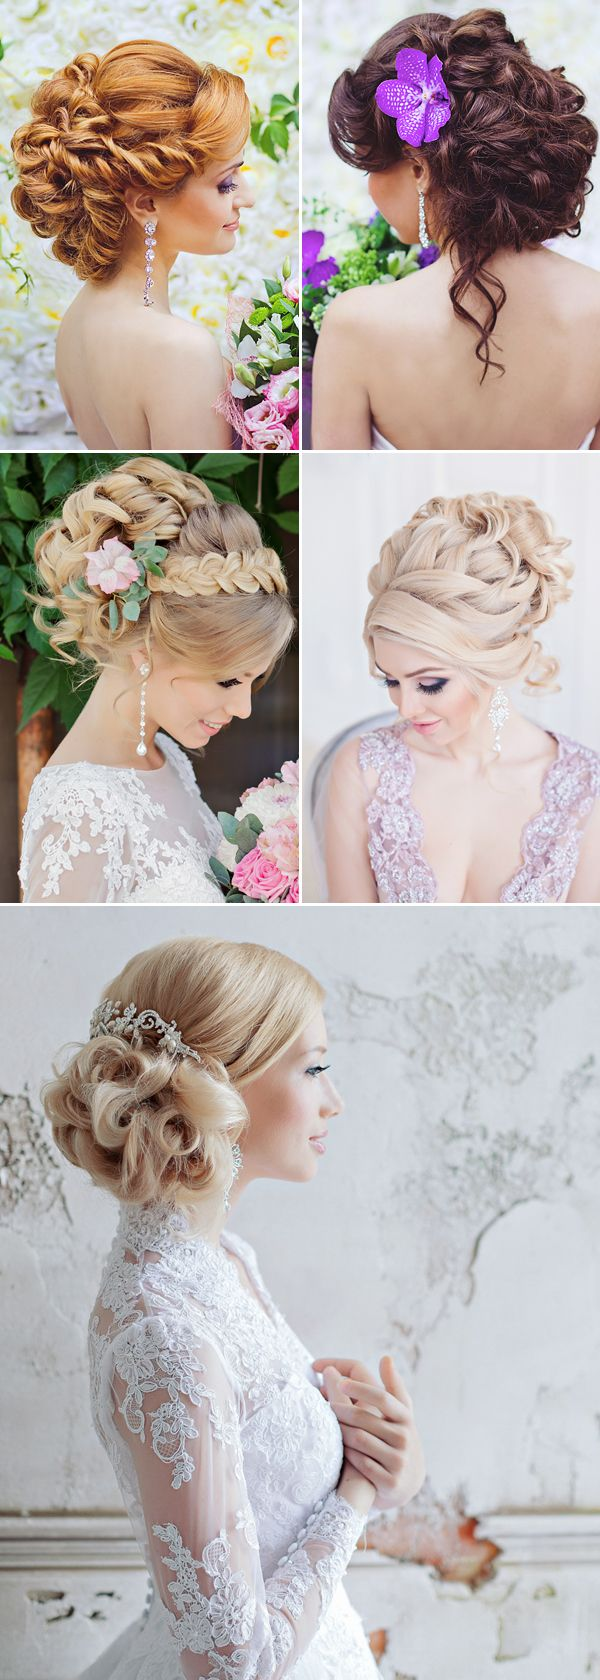 30 Seriously Hairstyles for Weddings (with Tutorial) | Bridal ...